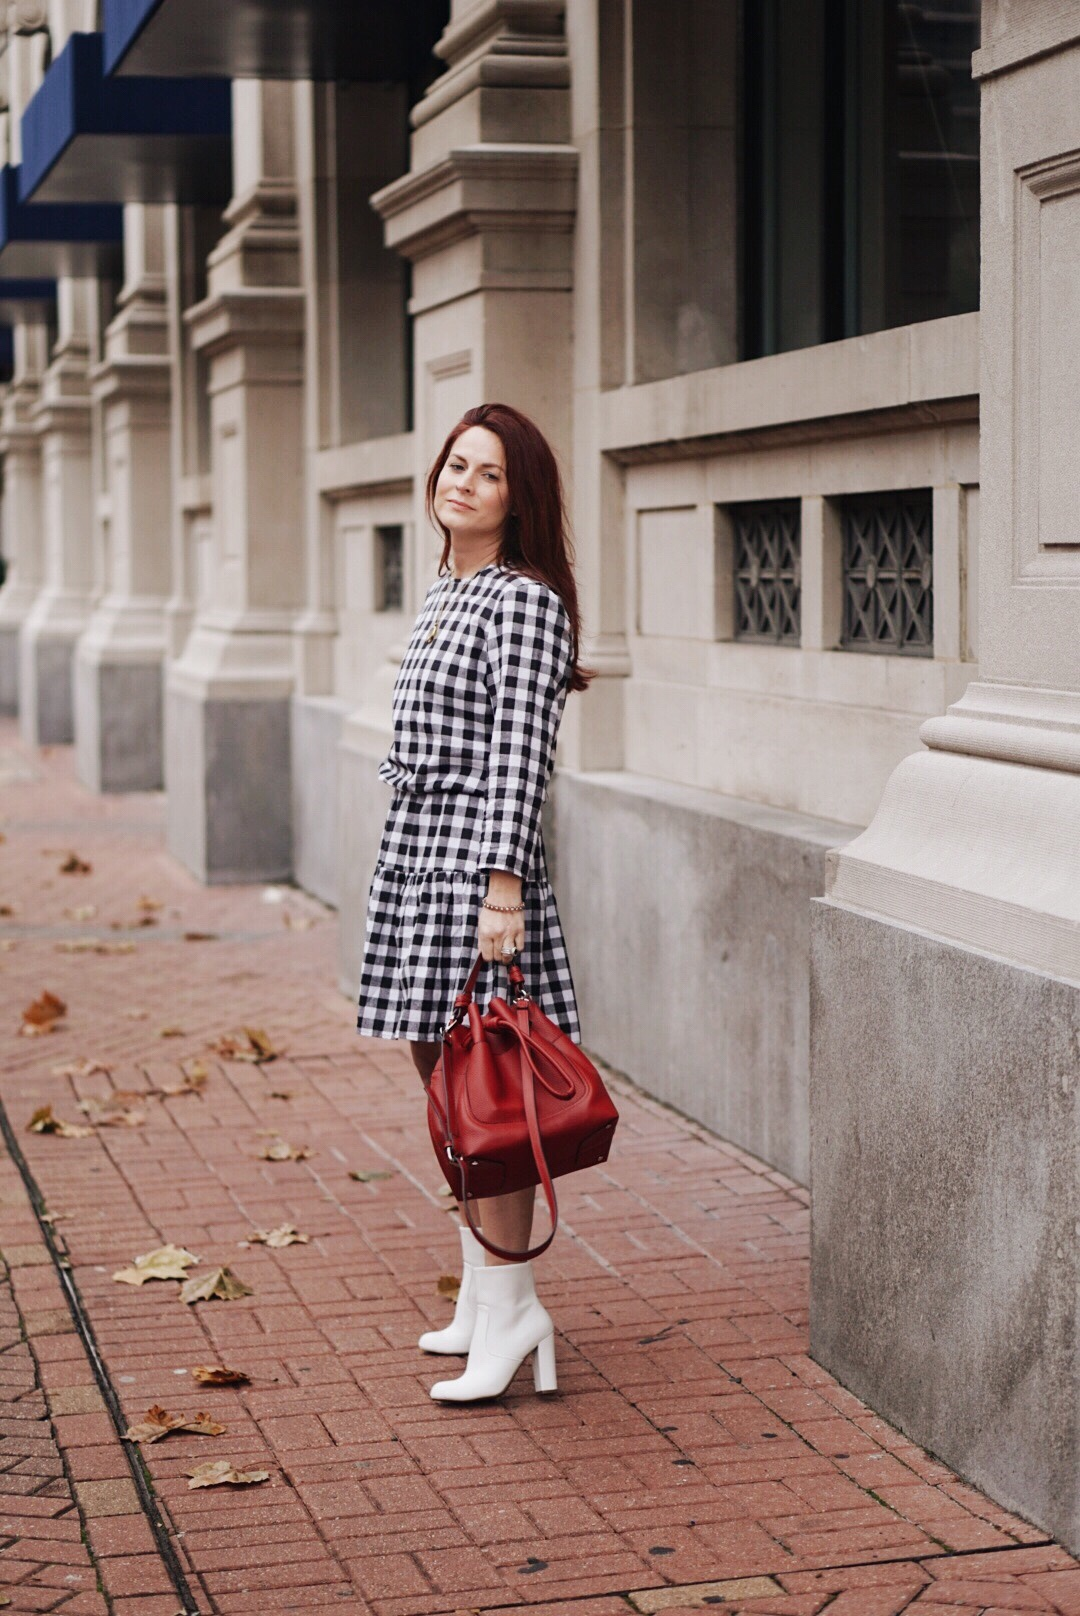 gingham, gingham dress, black and white dress, red bag, white boots